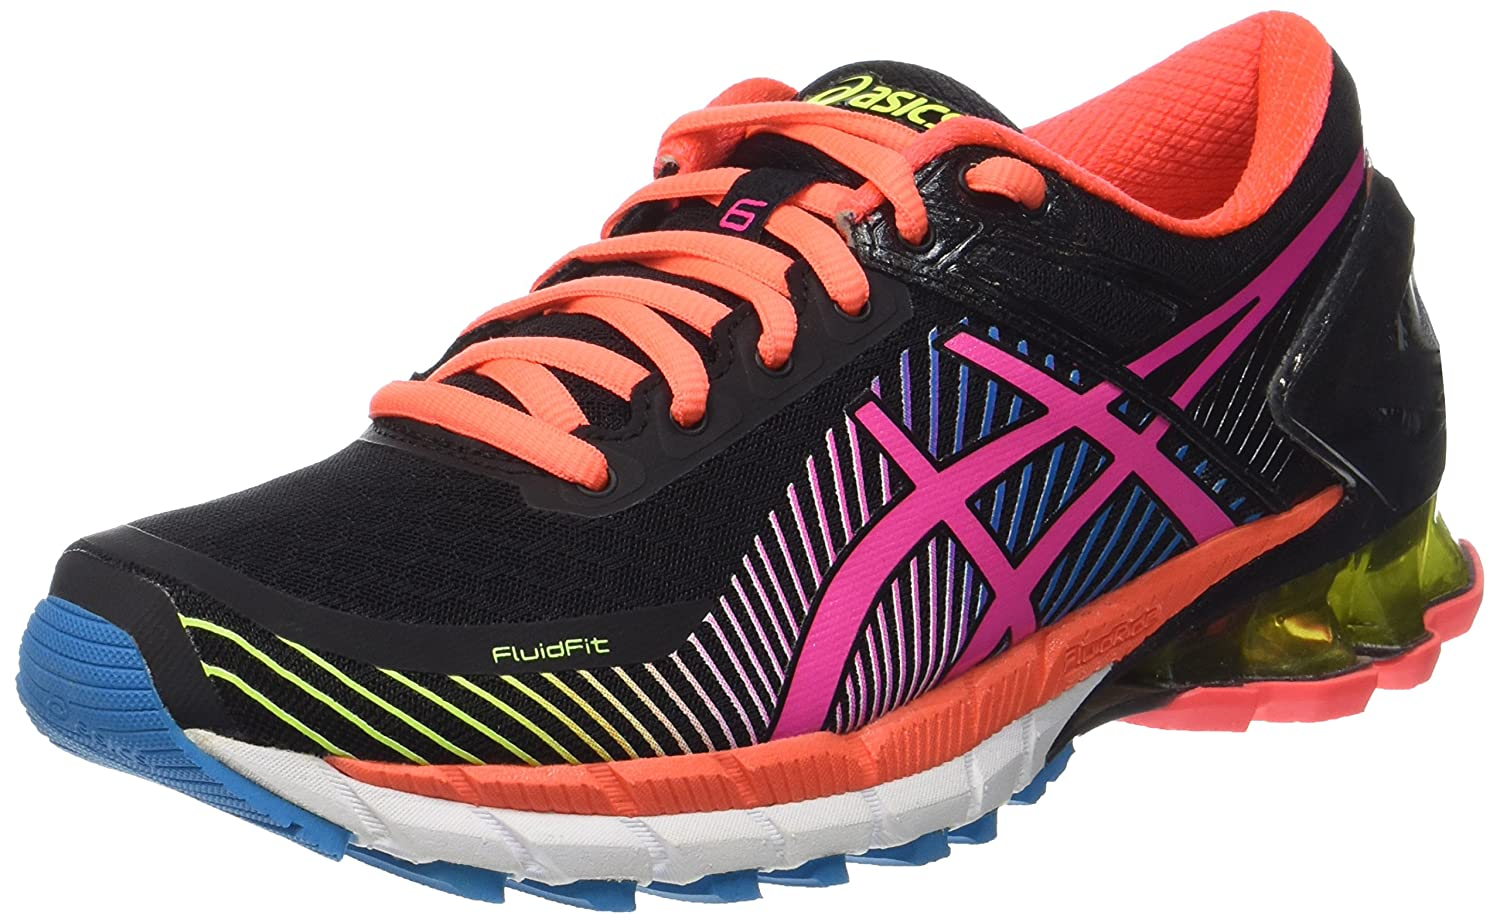 the latest b444c 1d731 Amazon.com | ASICS Gel-Kinsei 6 Women's Running Shoes - SS16 ...